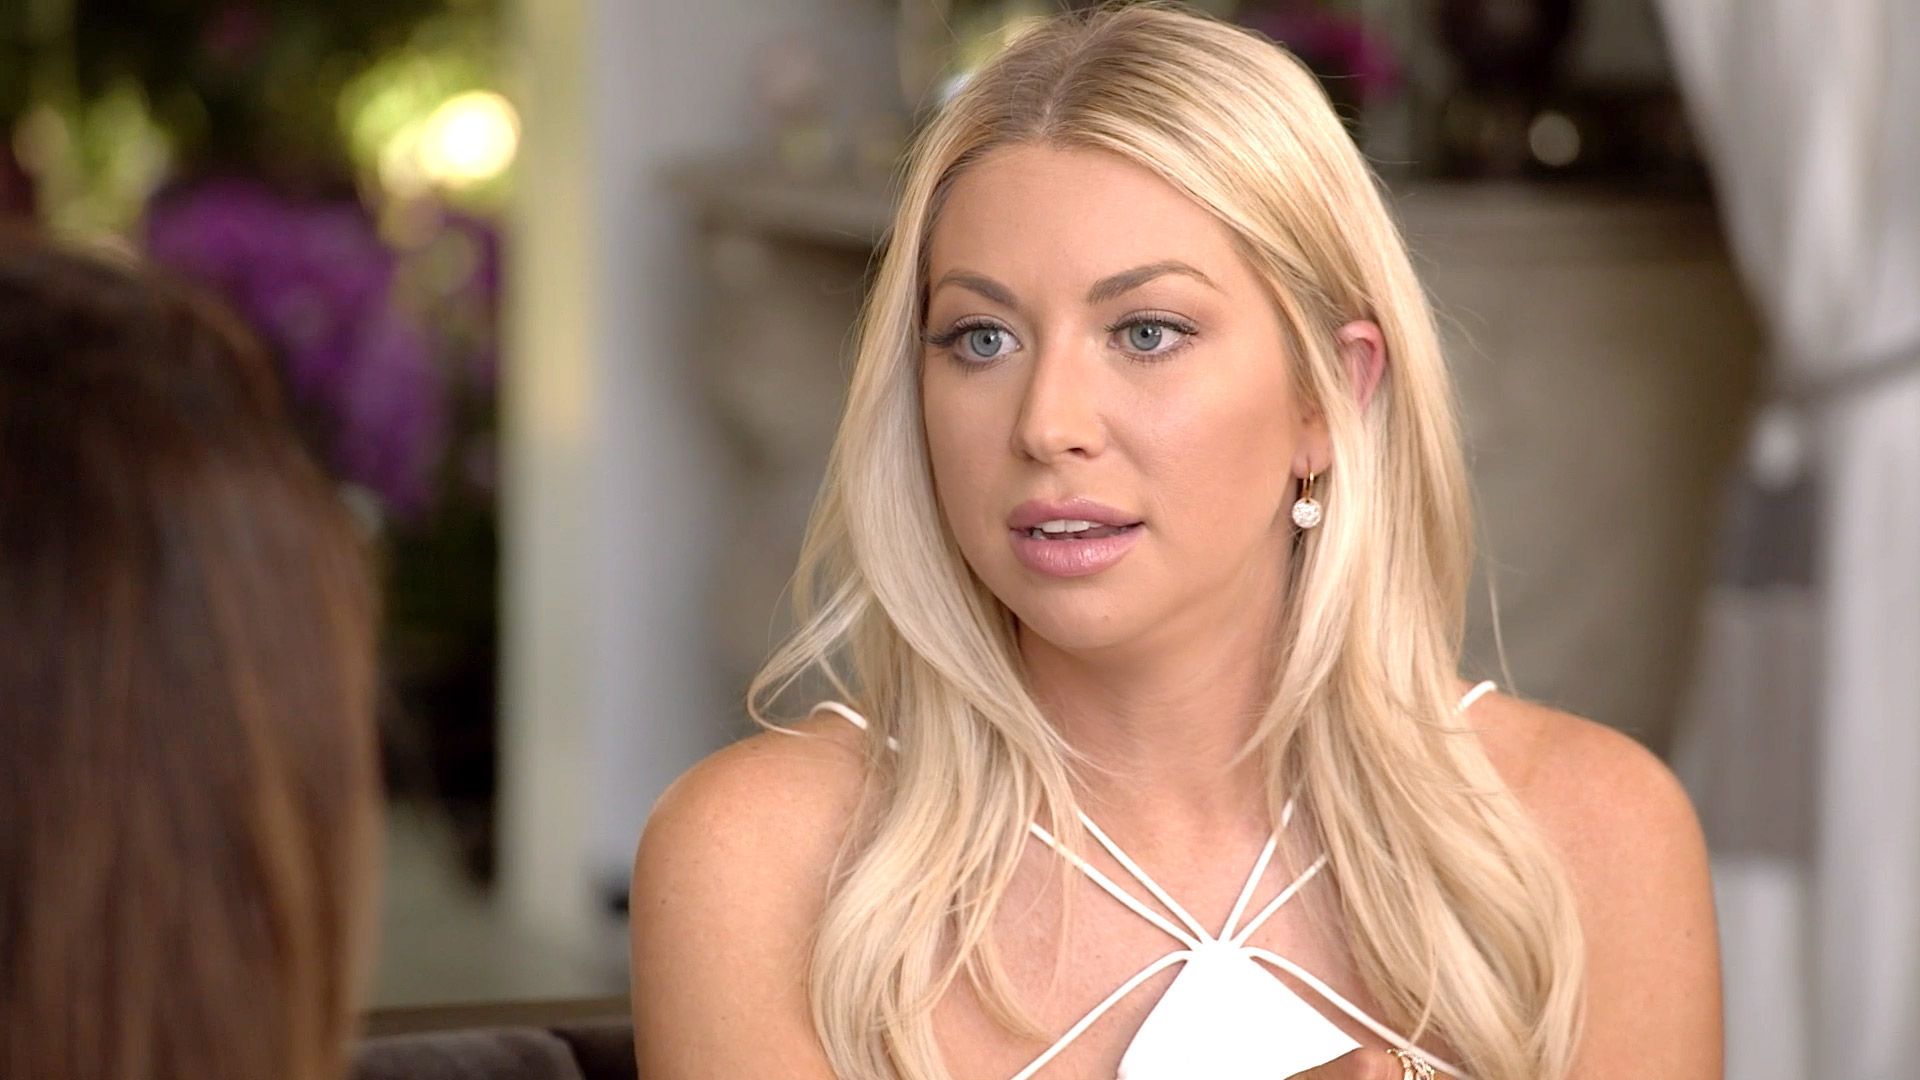 Stassi Opens up About Patrick and Jax to Lisa